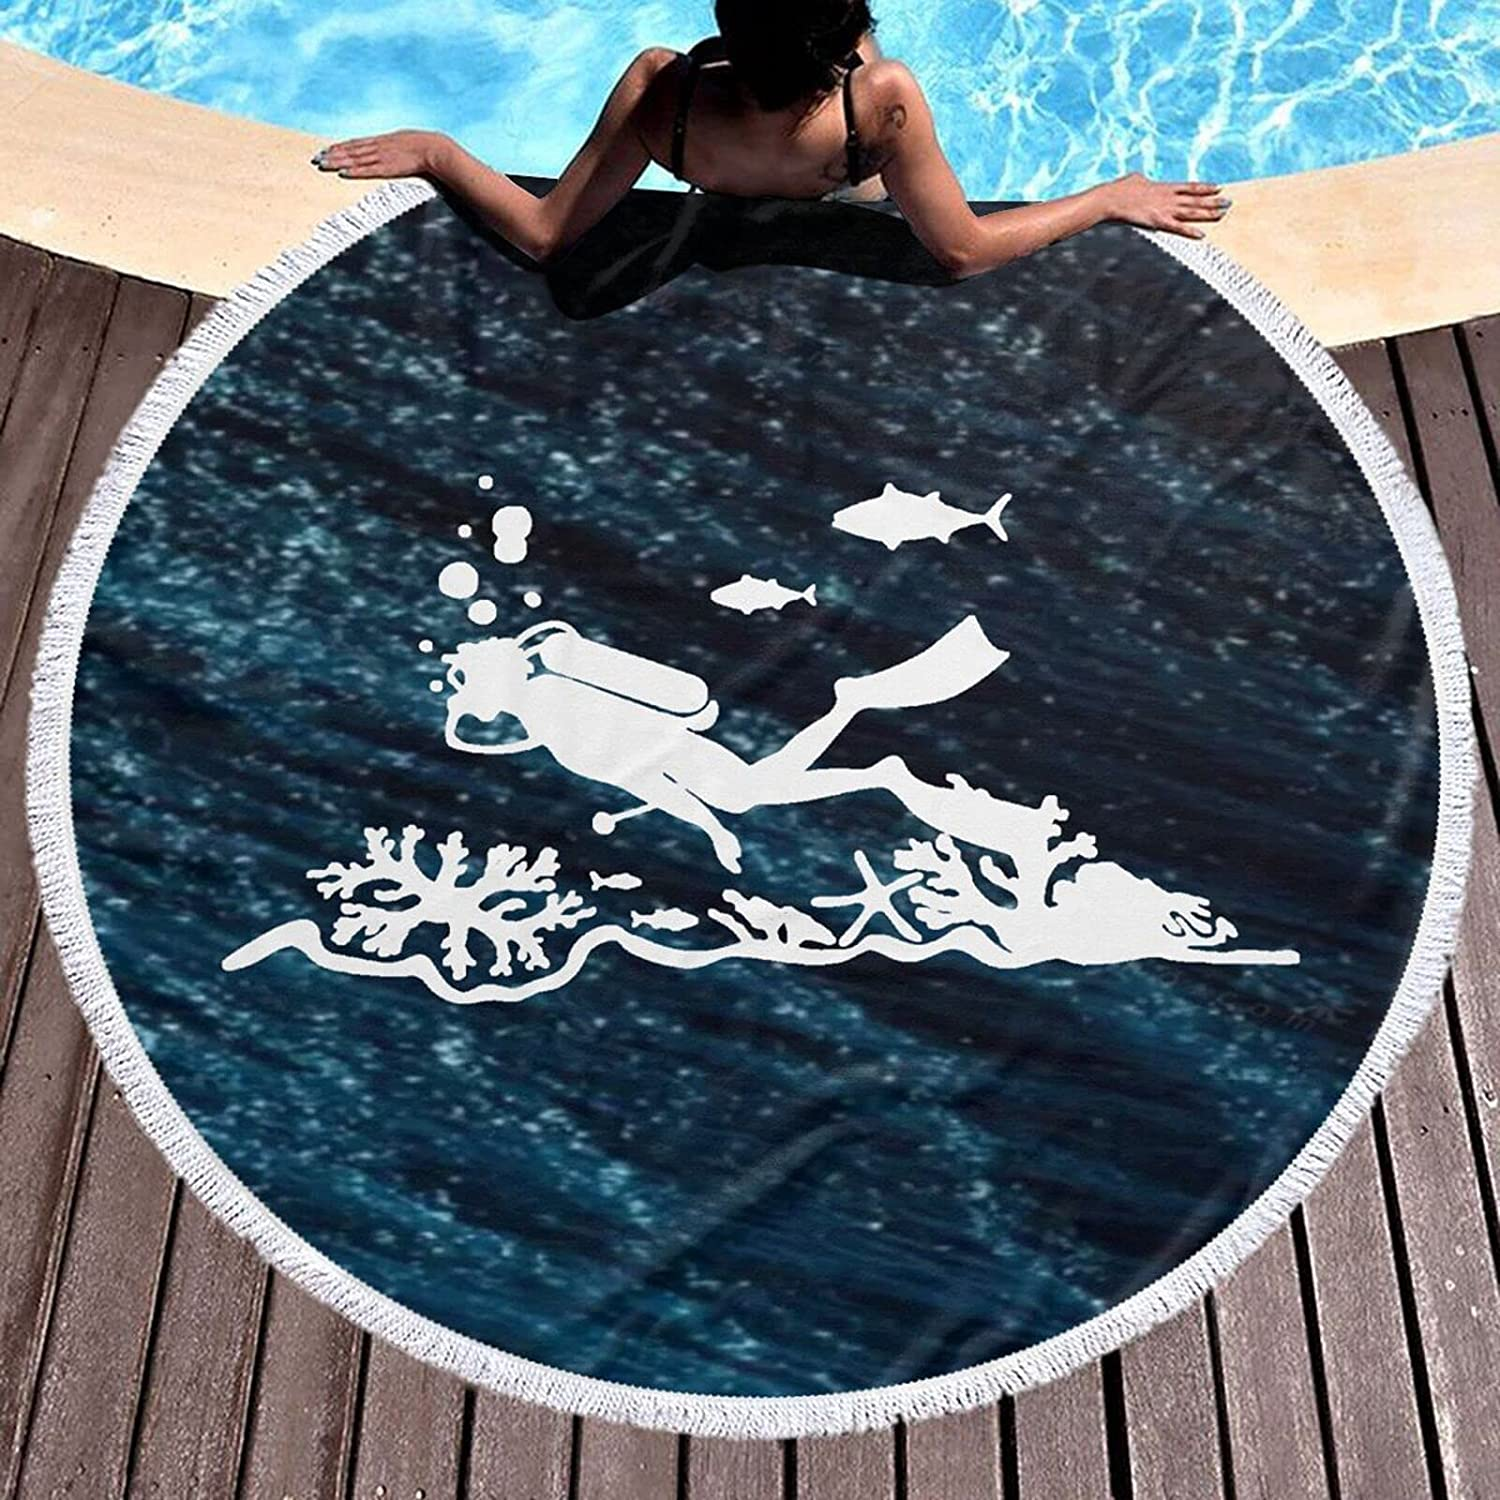 Coolest Diving Extreme Adventure Sea 59 Round Beach Bargain Sports Towel Low price